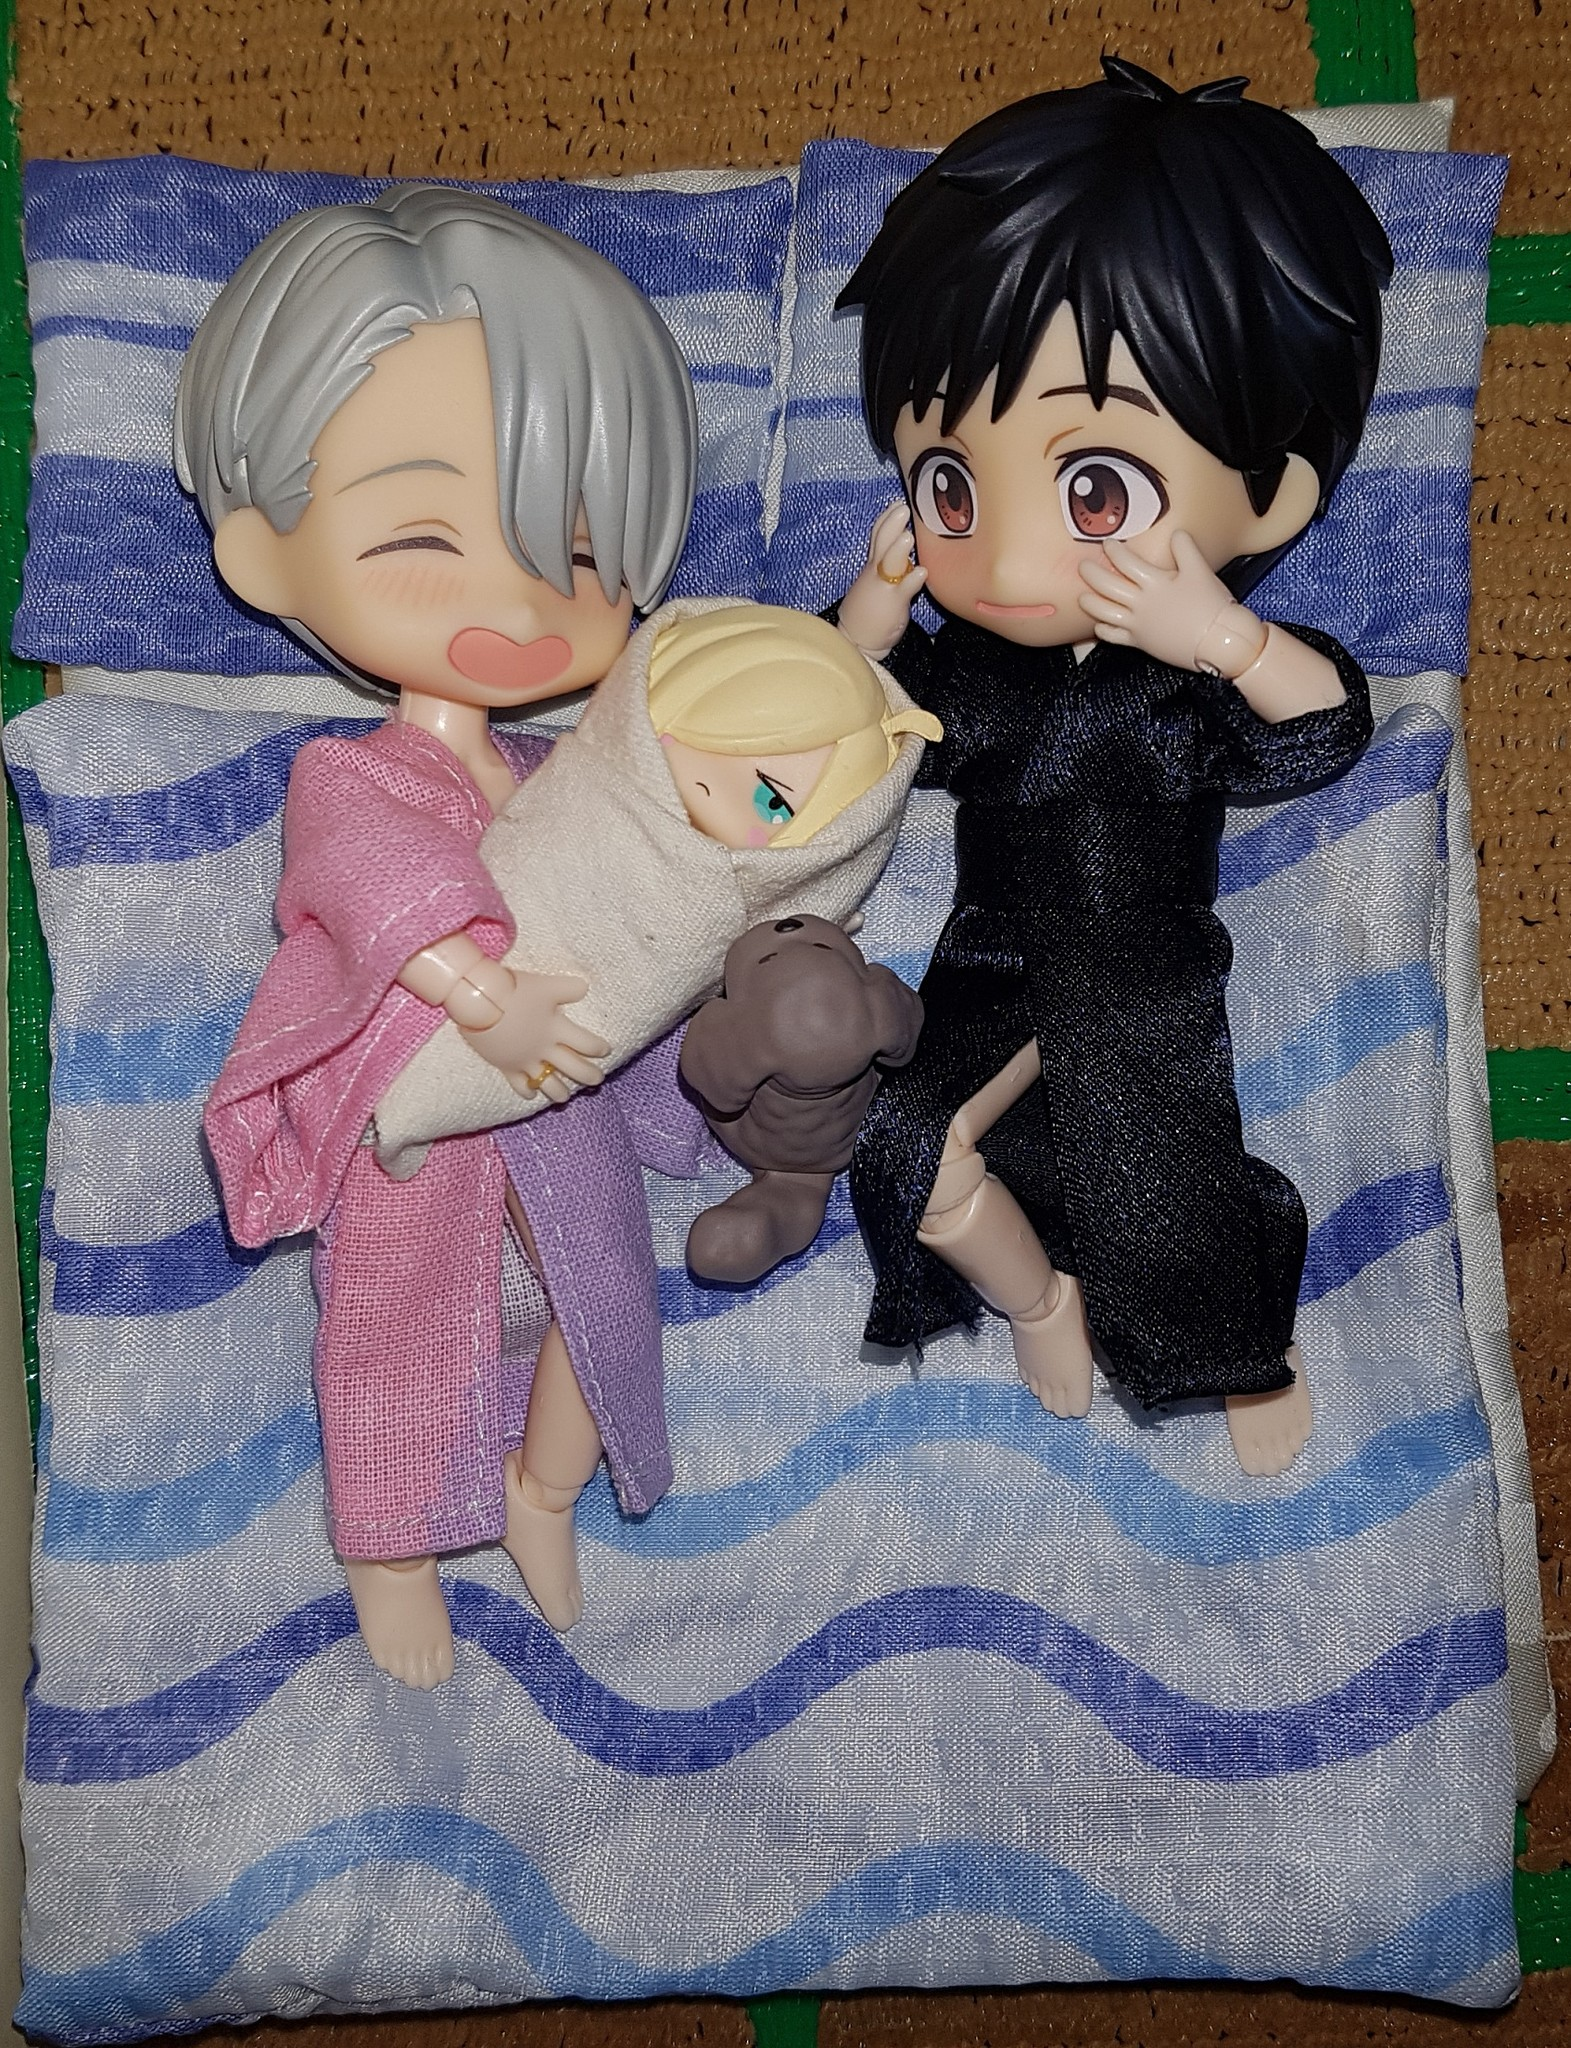 brown_eyes bed silver_hair smile tatami family nendoroid black_hair custom baby obitsu nendoron bushiroad keyholder shichibee mappa mascot_figure orange_rouge makkachin yuri!!!_on_ice katsuki_yuuri yuri_plisetsky victor_nikiforov obitsuroid yuri!!!_on_ice_yurayura_figure_mascot_vol.1